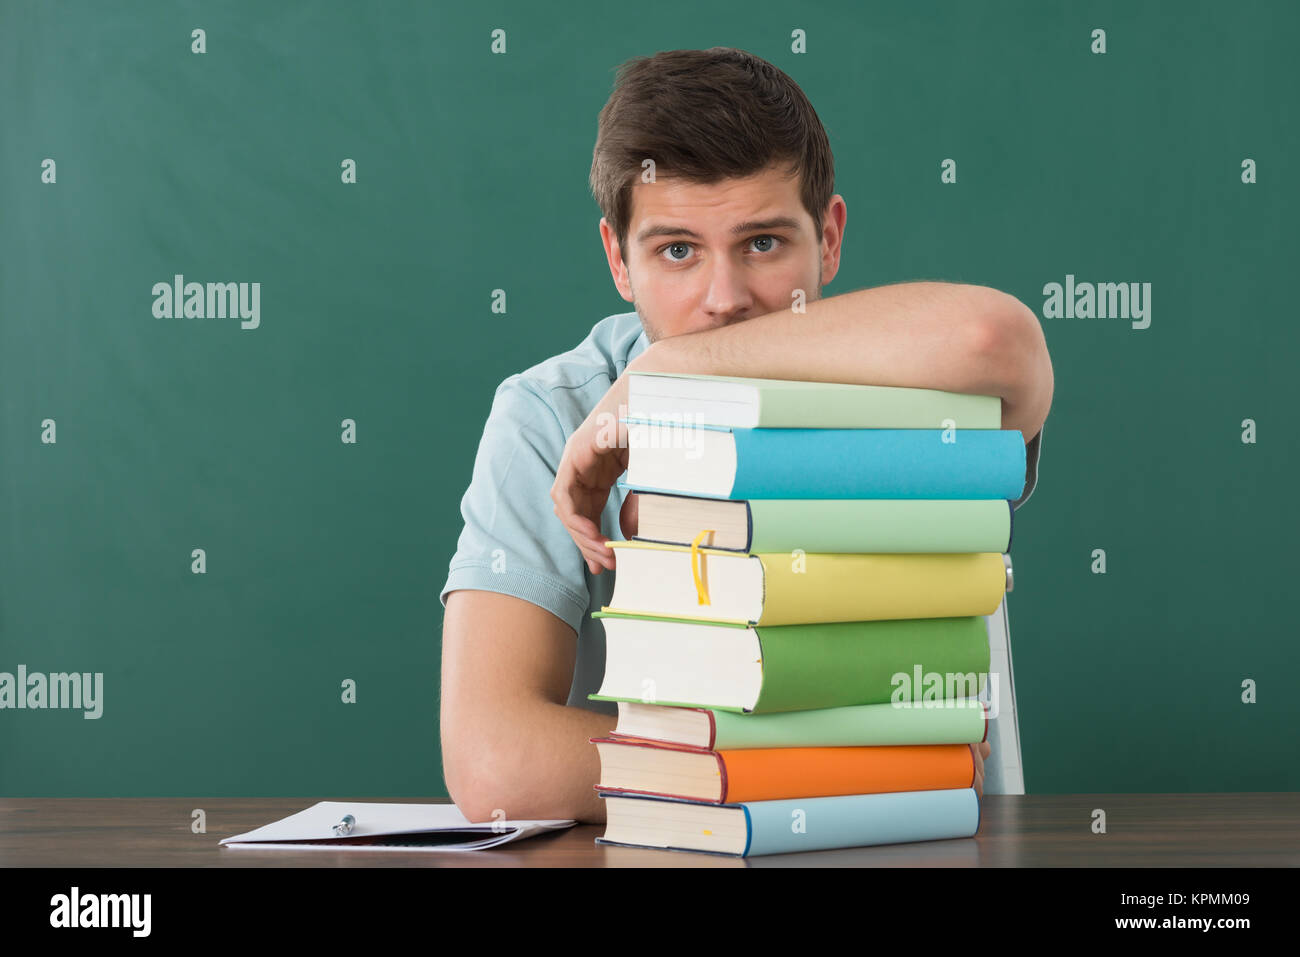 Man Leaning On Stack Of Books - Stock Image